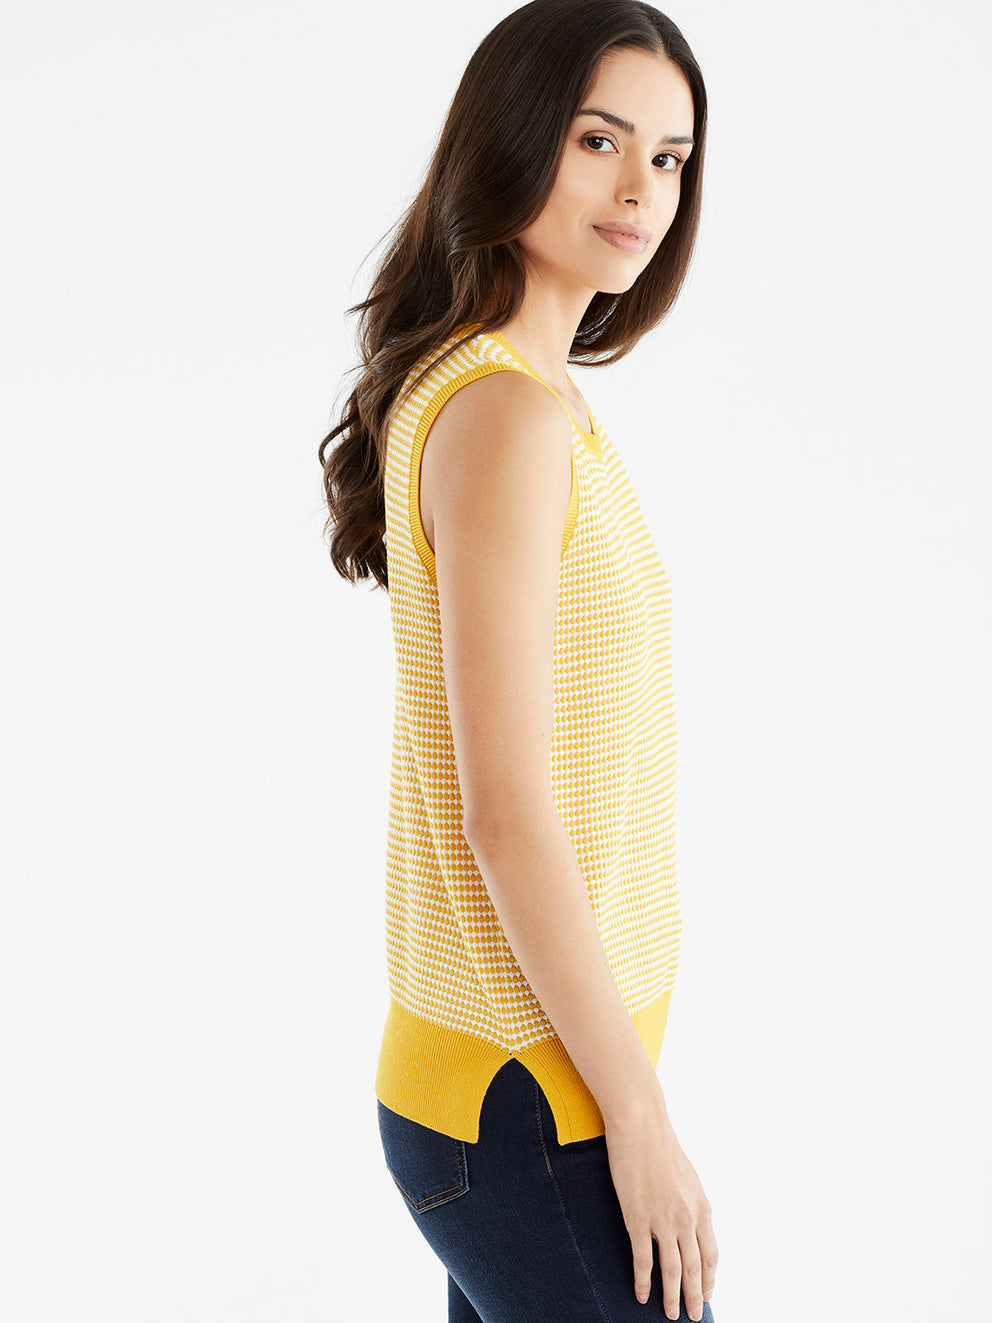 The Jones New York Sleeveless Dot Print Top in color Dotted Golden - Image Position 2